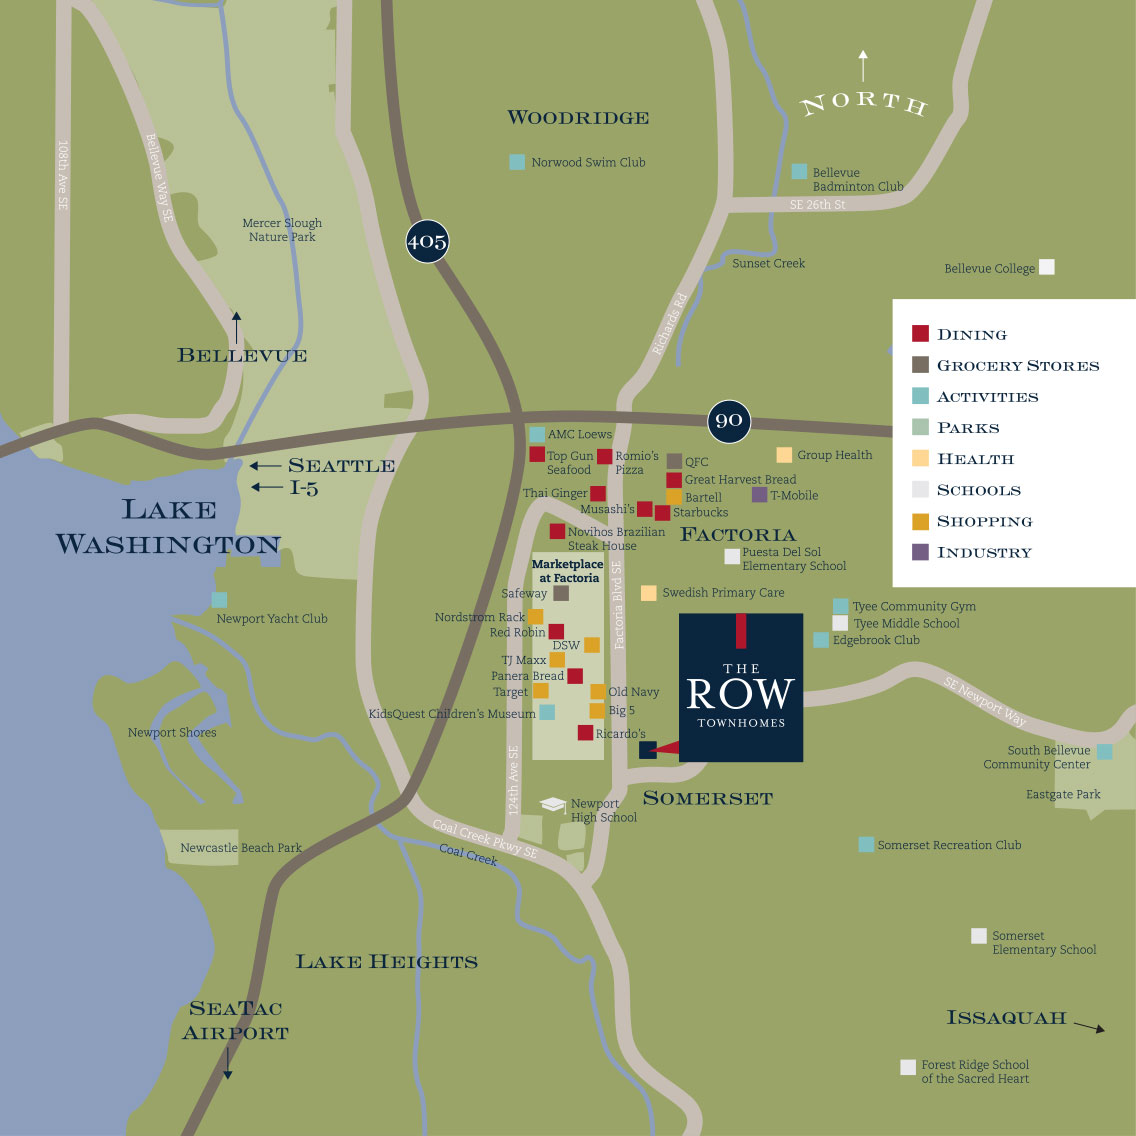 Vicinity Map of The Row Townhomes, Townhomes for Rent between Factoria and Bellevue, Washington 98006